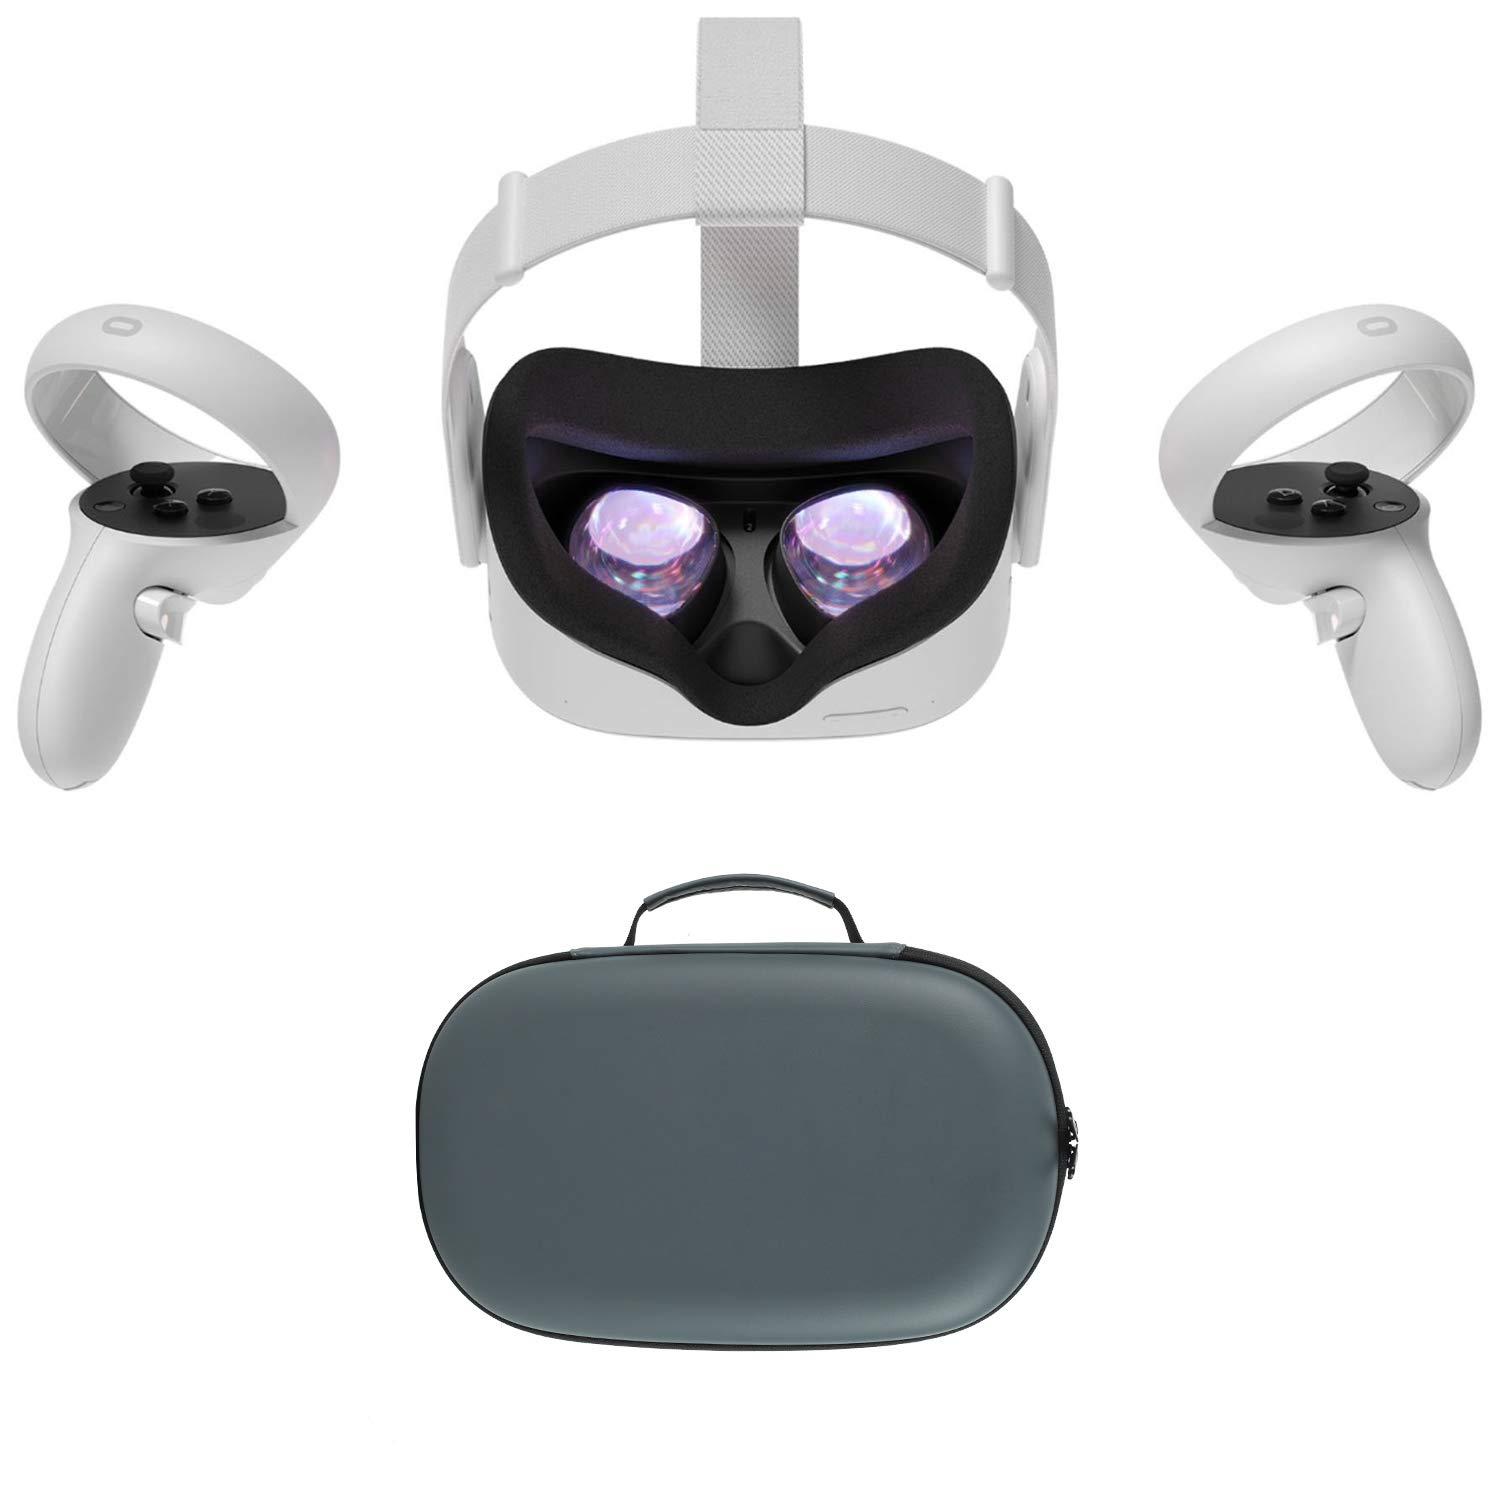 2020 Oculus Quest 2 All-In-One VR Headset, Touch Controllers, 64GB SSD, 1832x1920 up to 90 Hz Refresh Rate LCD, Glasses Compitble, 3D Audio, Mytrix Carrying Case